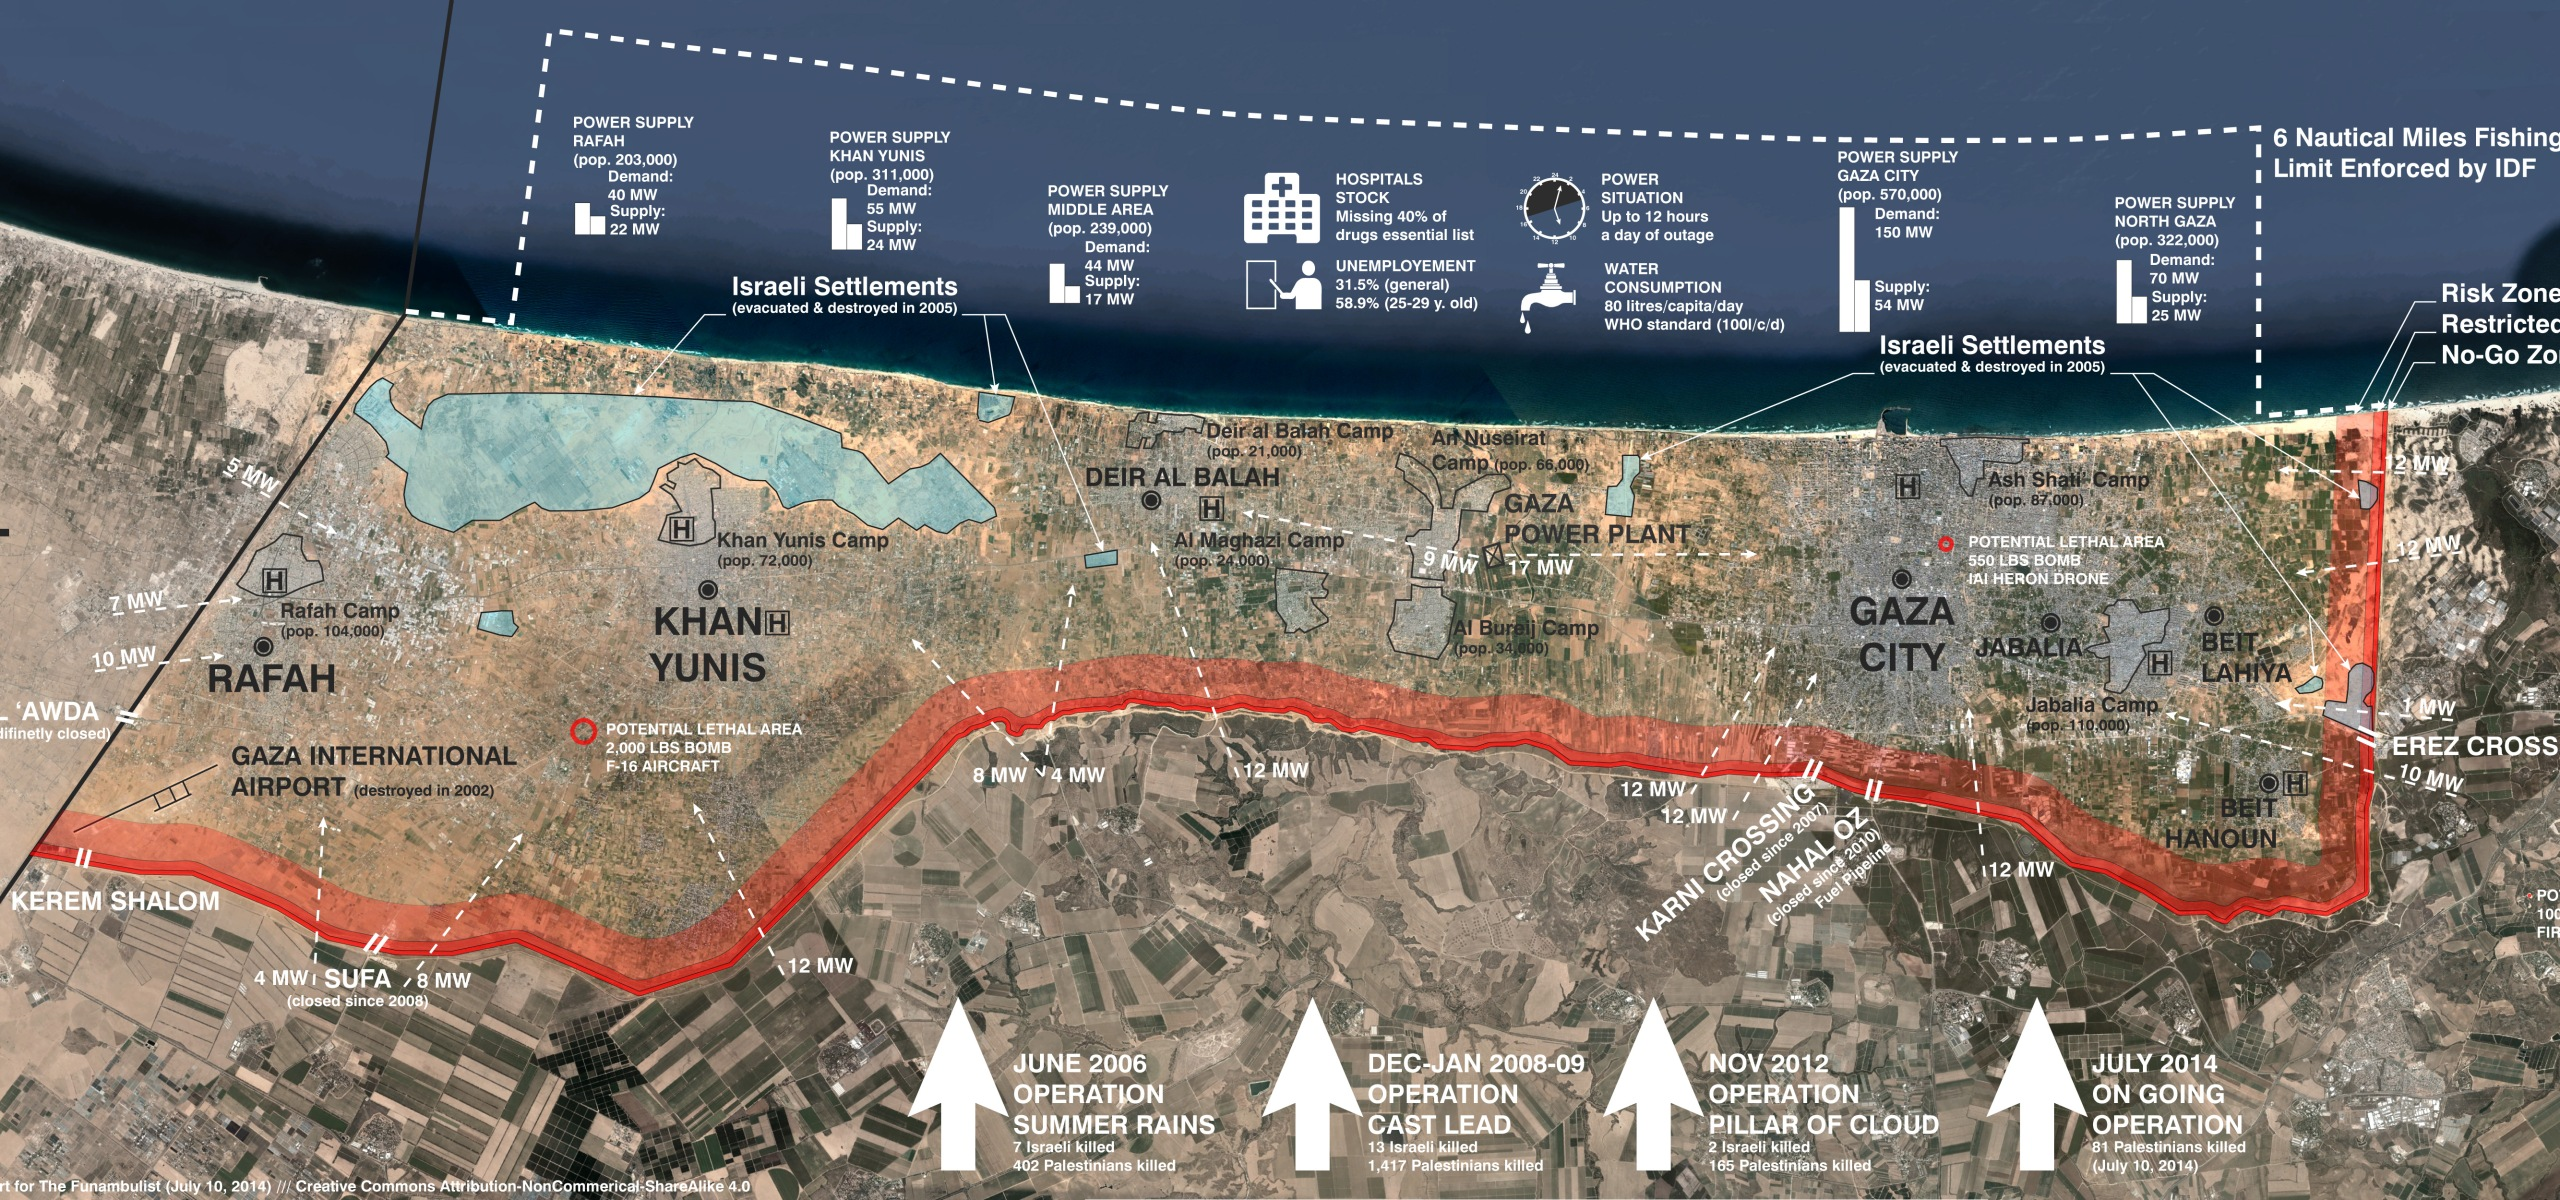 Gaza - The Funambulist